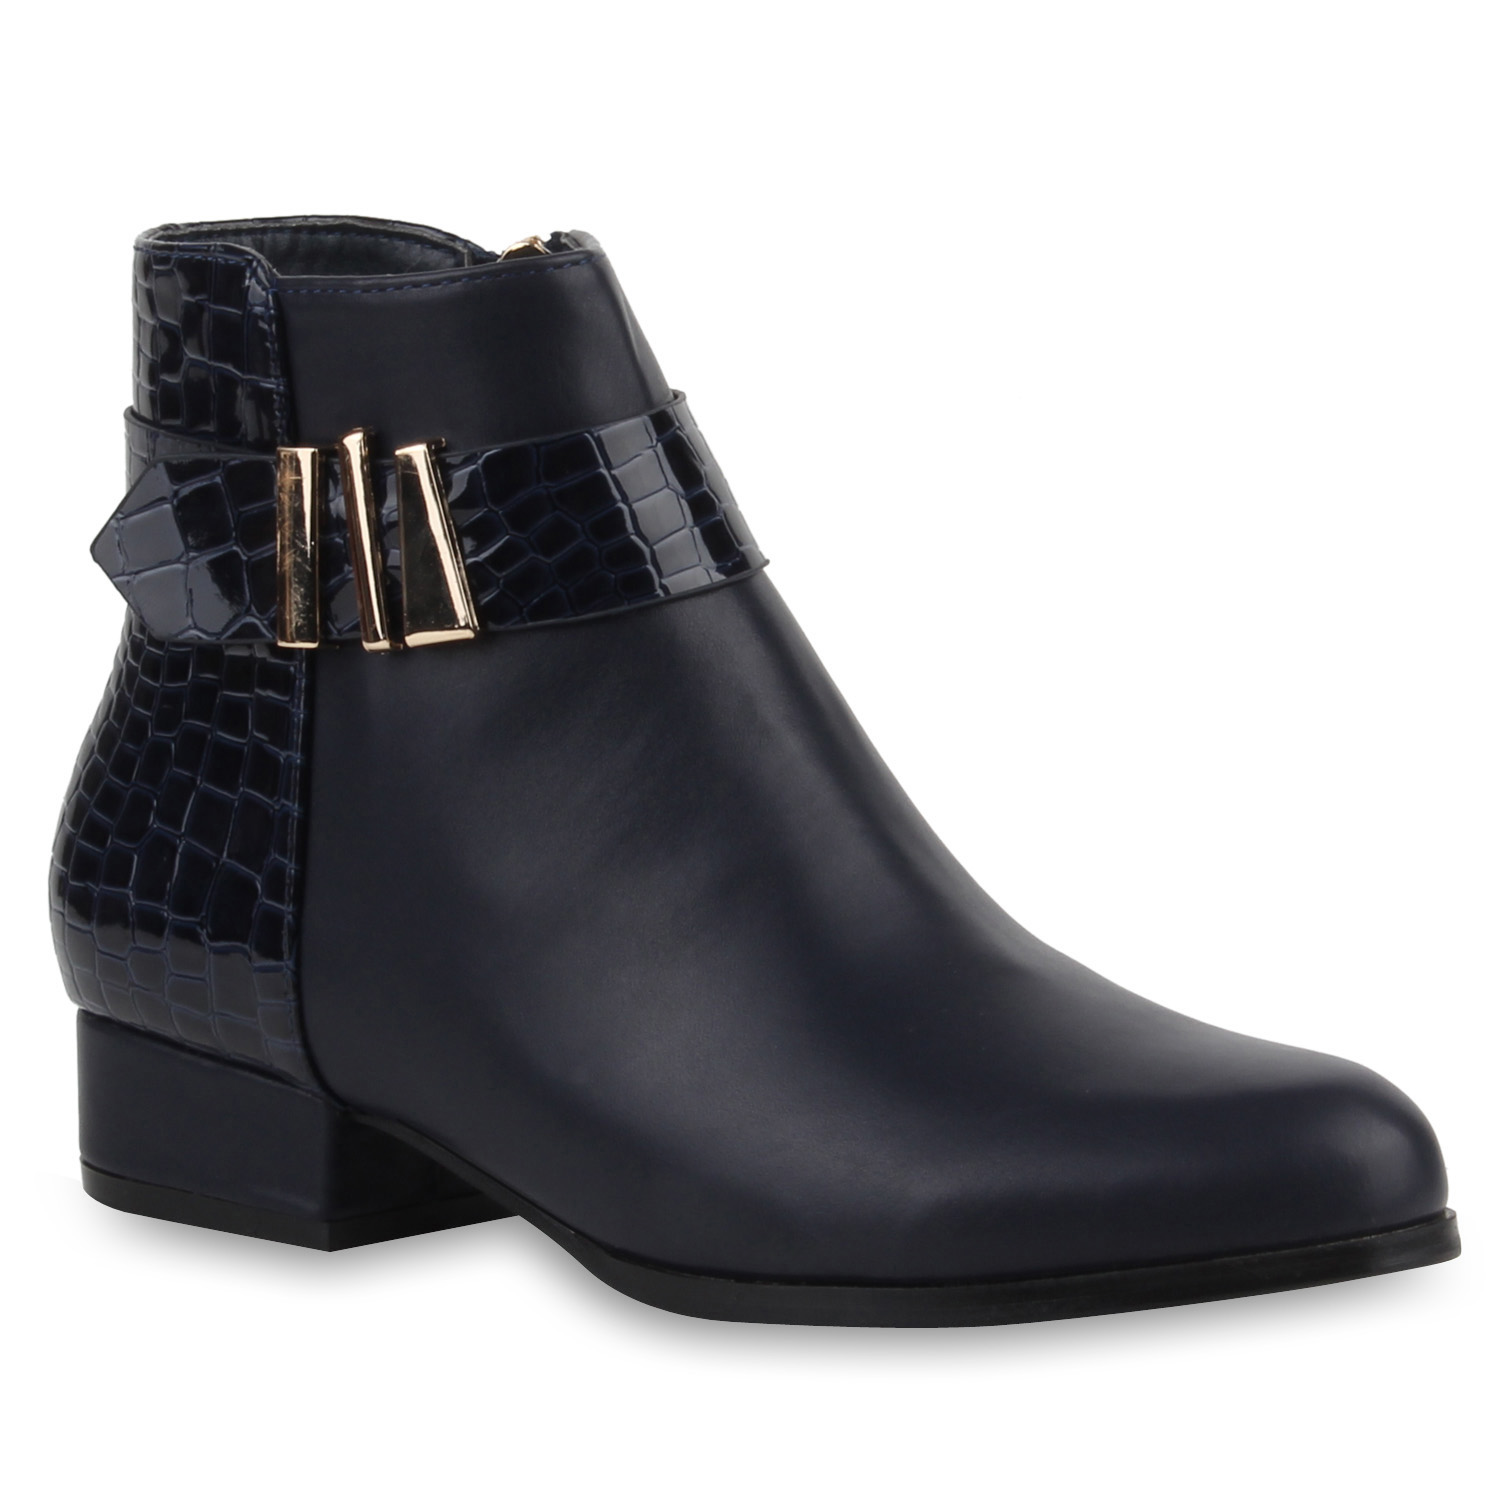 flache damen stiefeletten materialmix lack boots 77614 ebay. Black Bedroom Furniture Sets. Home Design Ideas